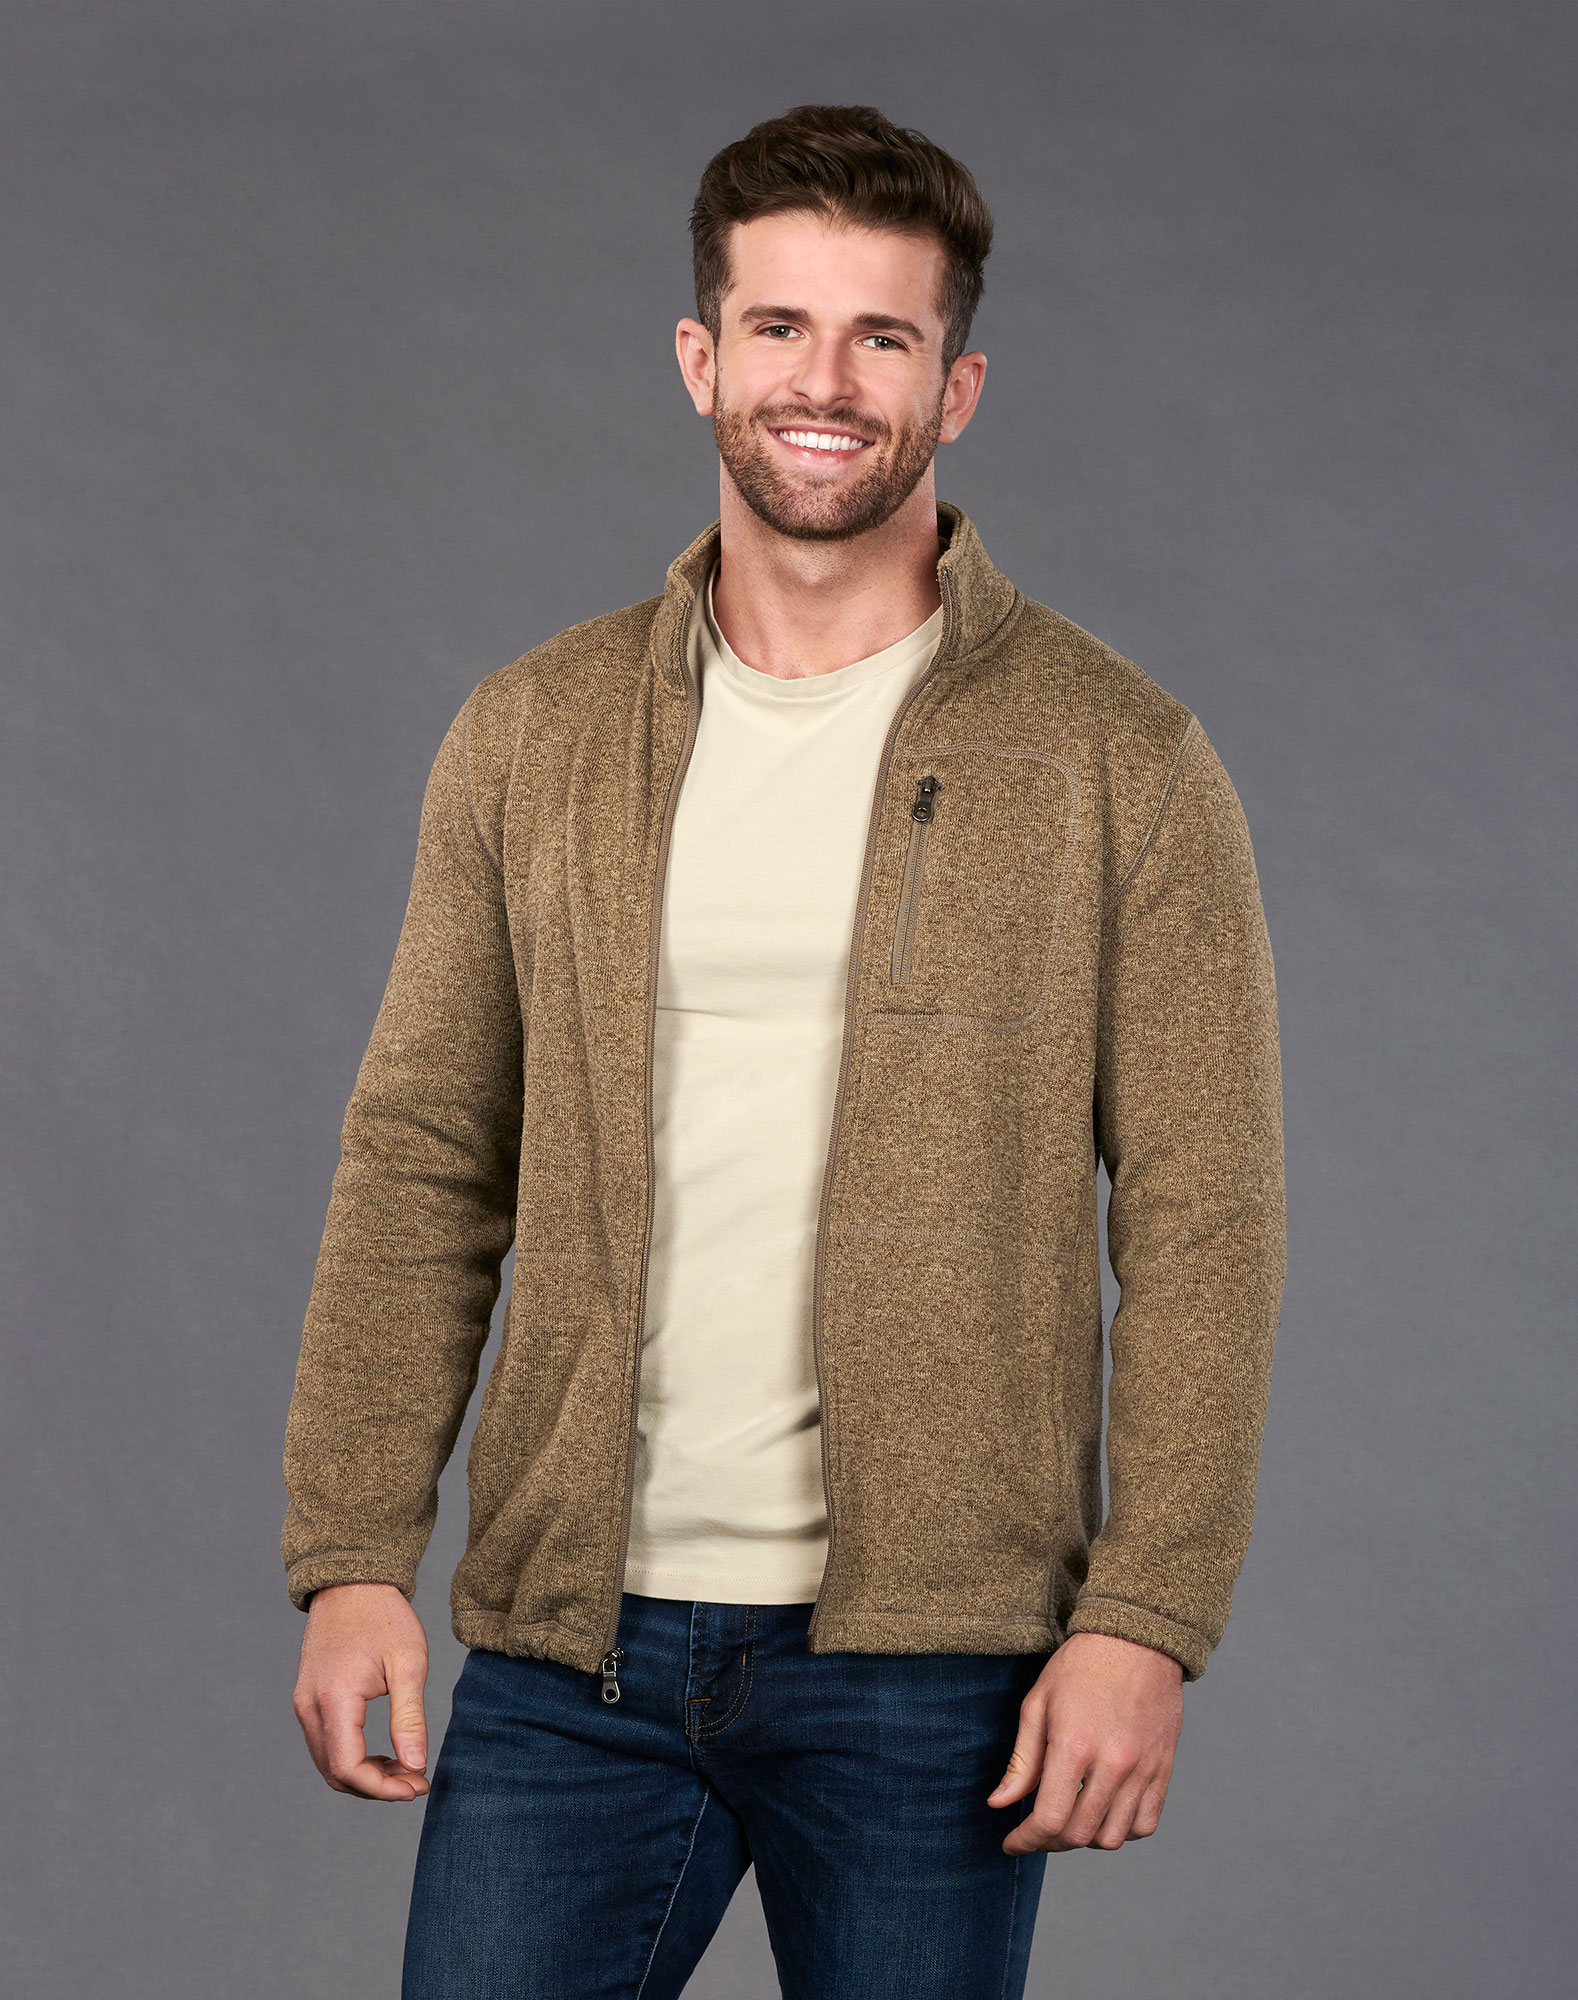 """'The Bachelorette' Season 15: 11 Strangest Revelations From Hannah Brown's Suitors' Bios - He may have country roots as a singer and songwriter living in Nashville, but the 25-year-old can rap Nicki Minaj 's verse in """"Bottoms Up"""" flawlessly and """"can shoot a rubber band with freakish accuracy."""""""